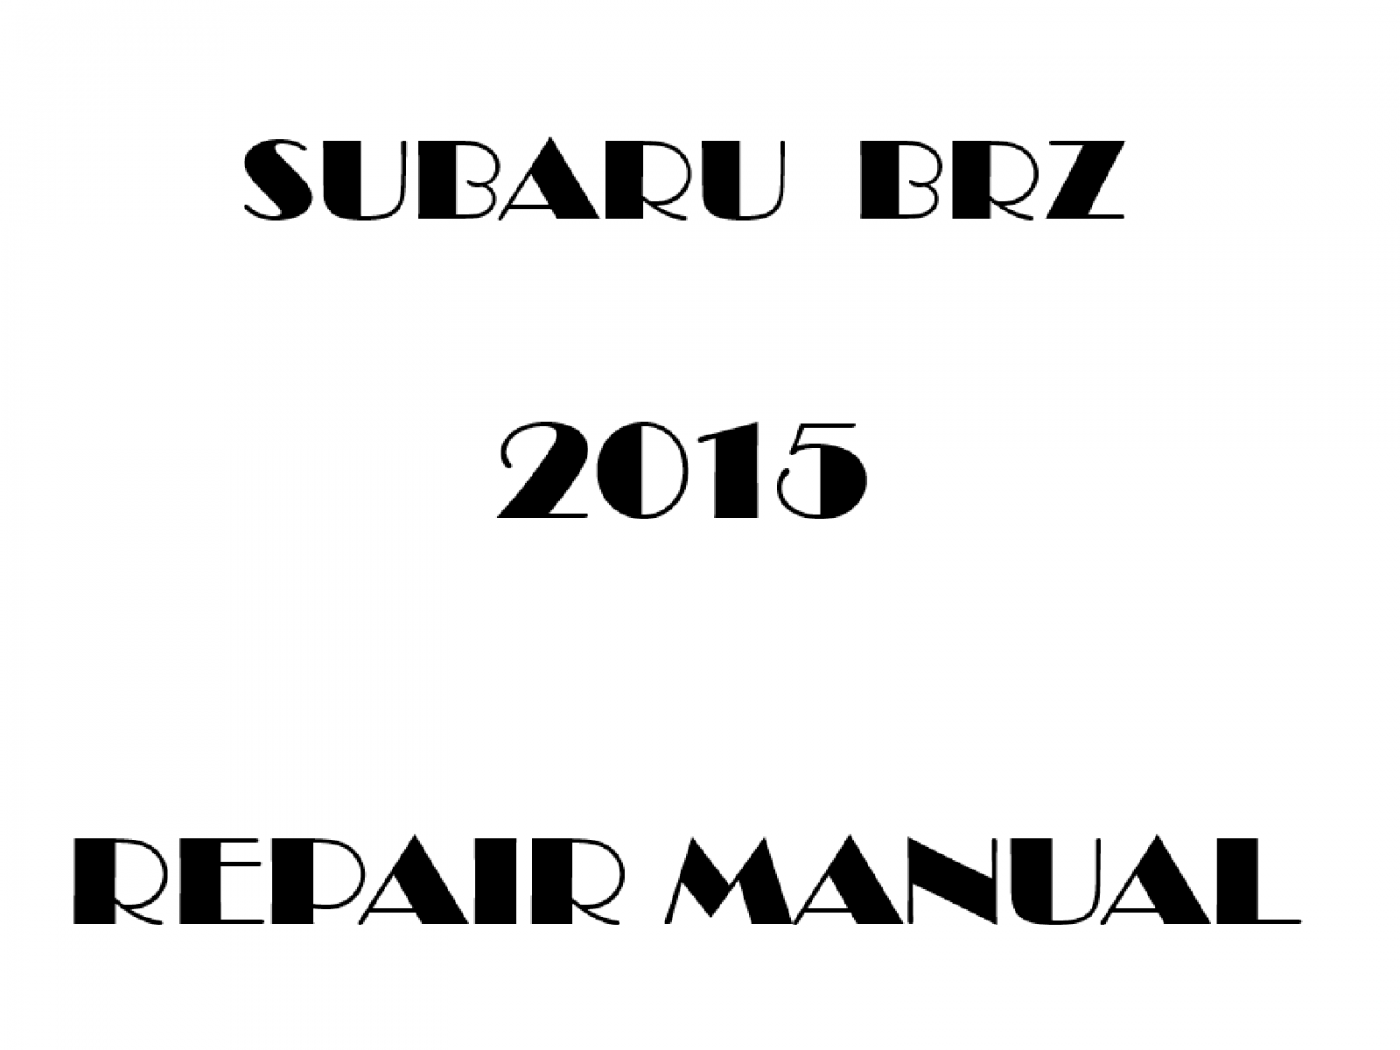 2015 Subaru BRZ repair manual